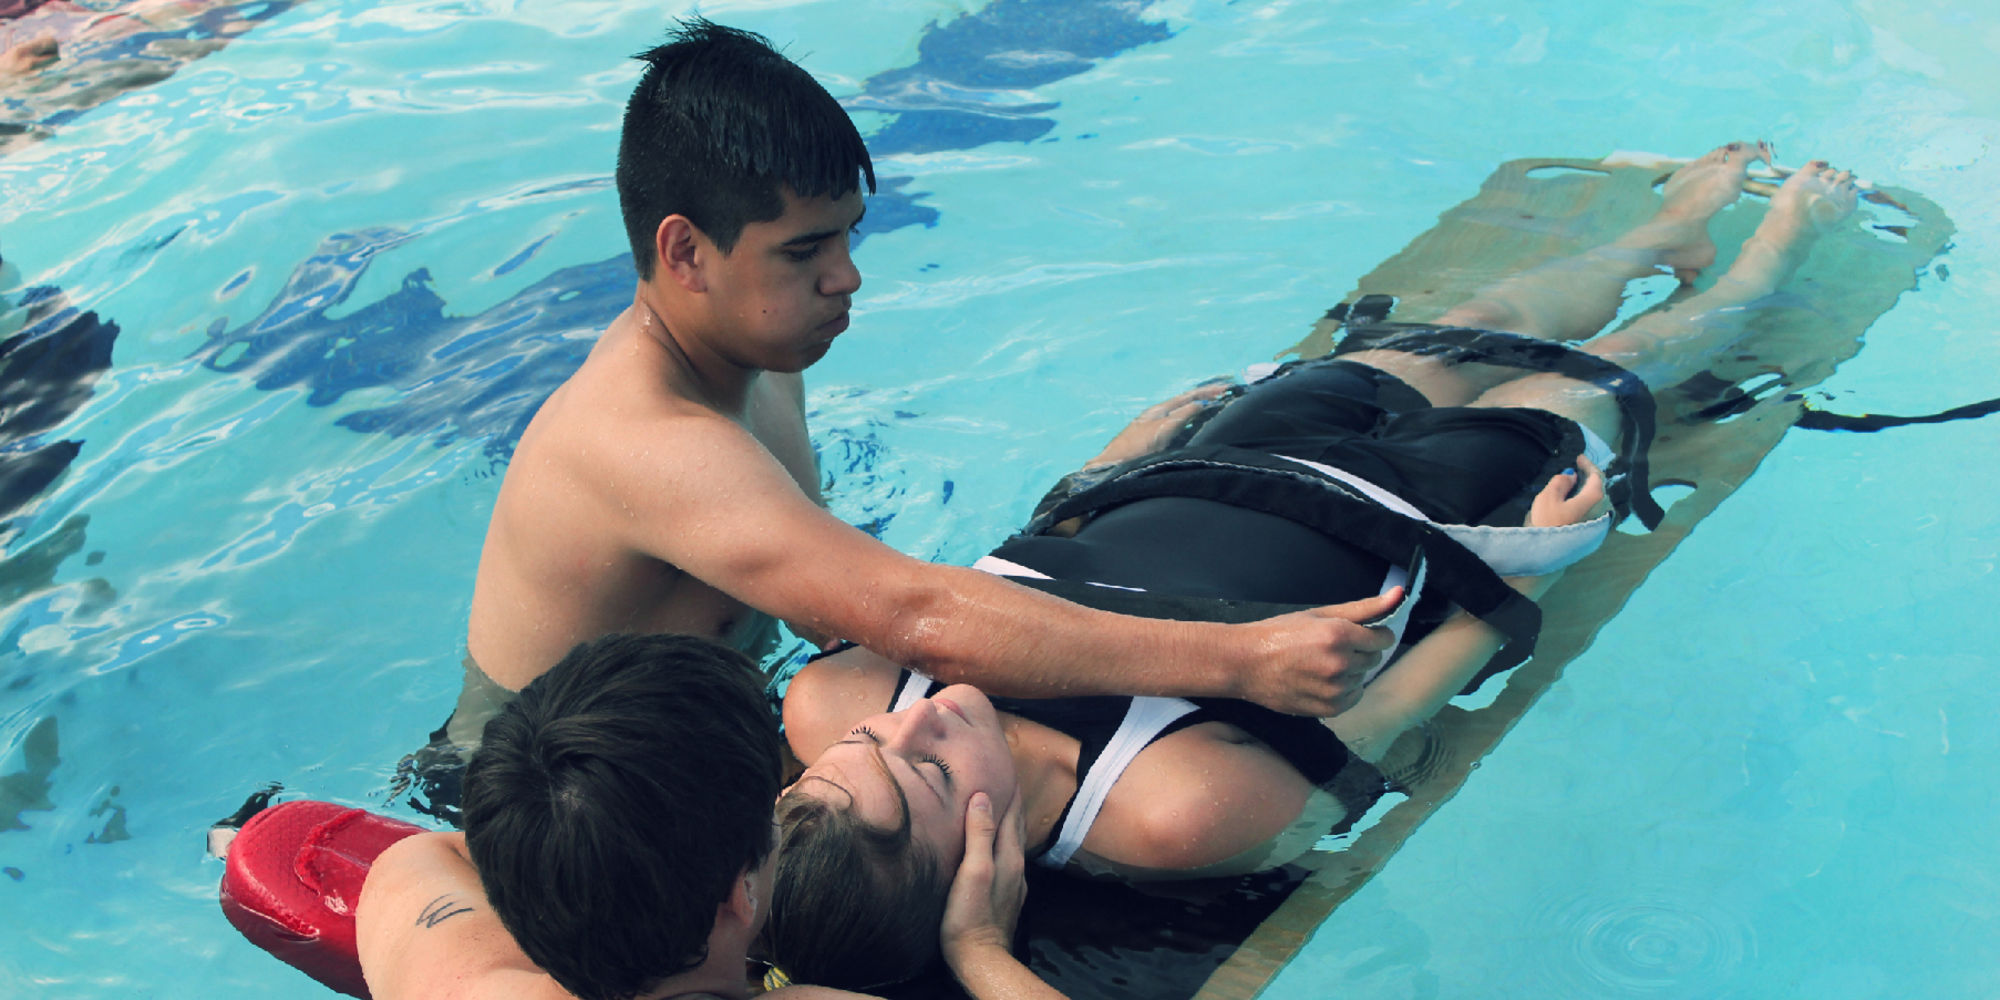 Christian Castle Lifeguard Olympics - Drowning Prevention Coalition of El Paso, Texas